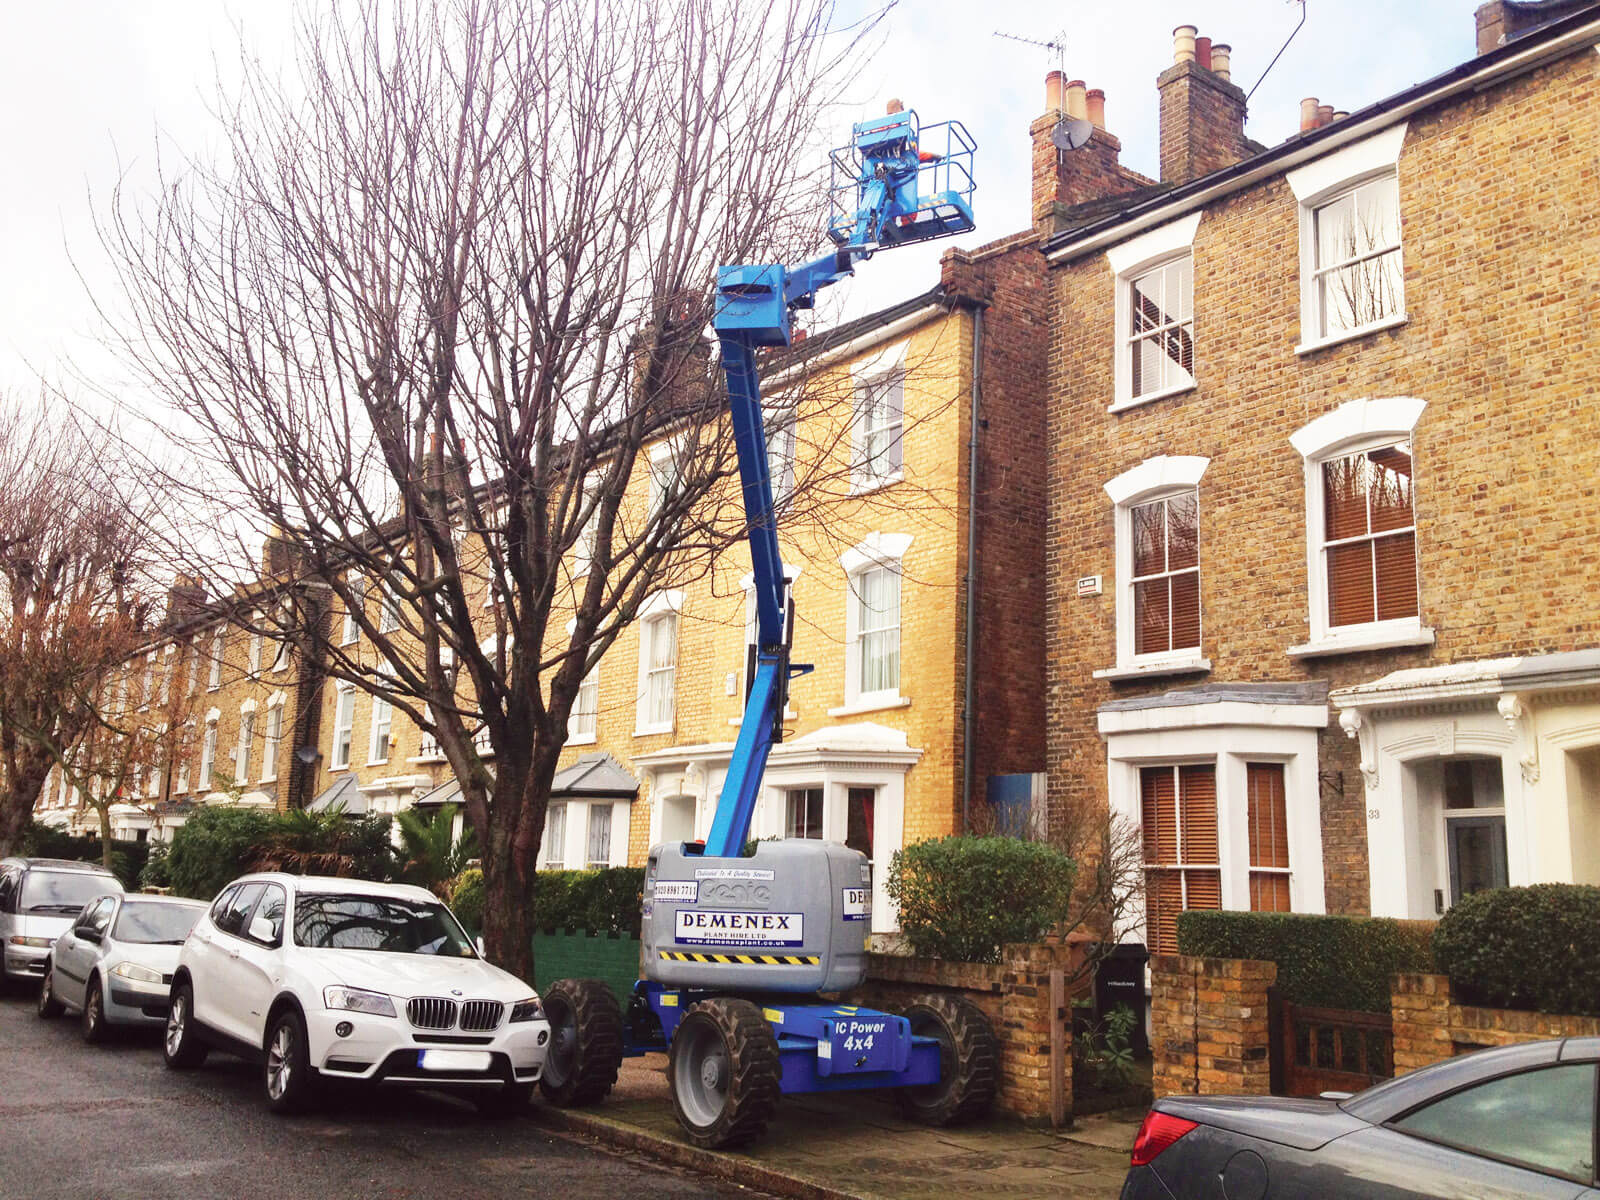 Cherry picker hire prices London city